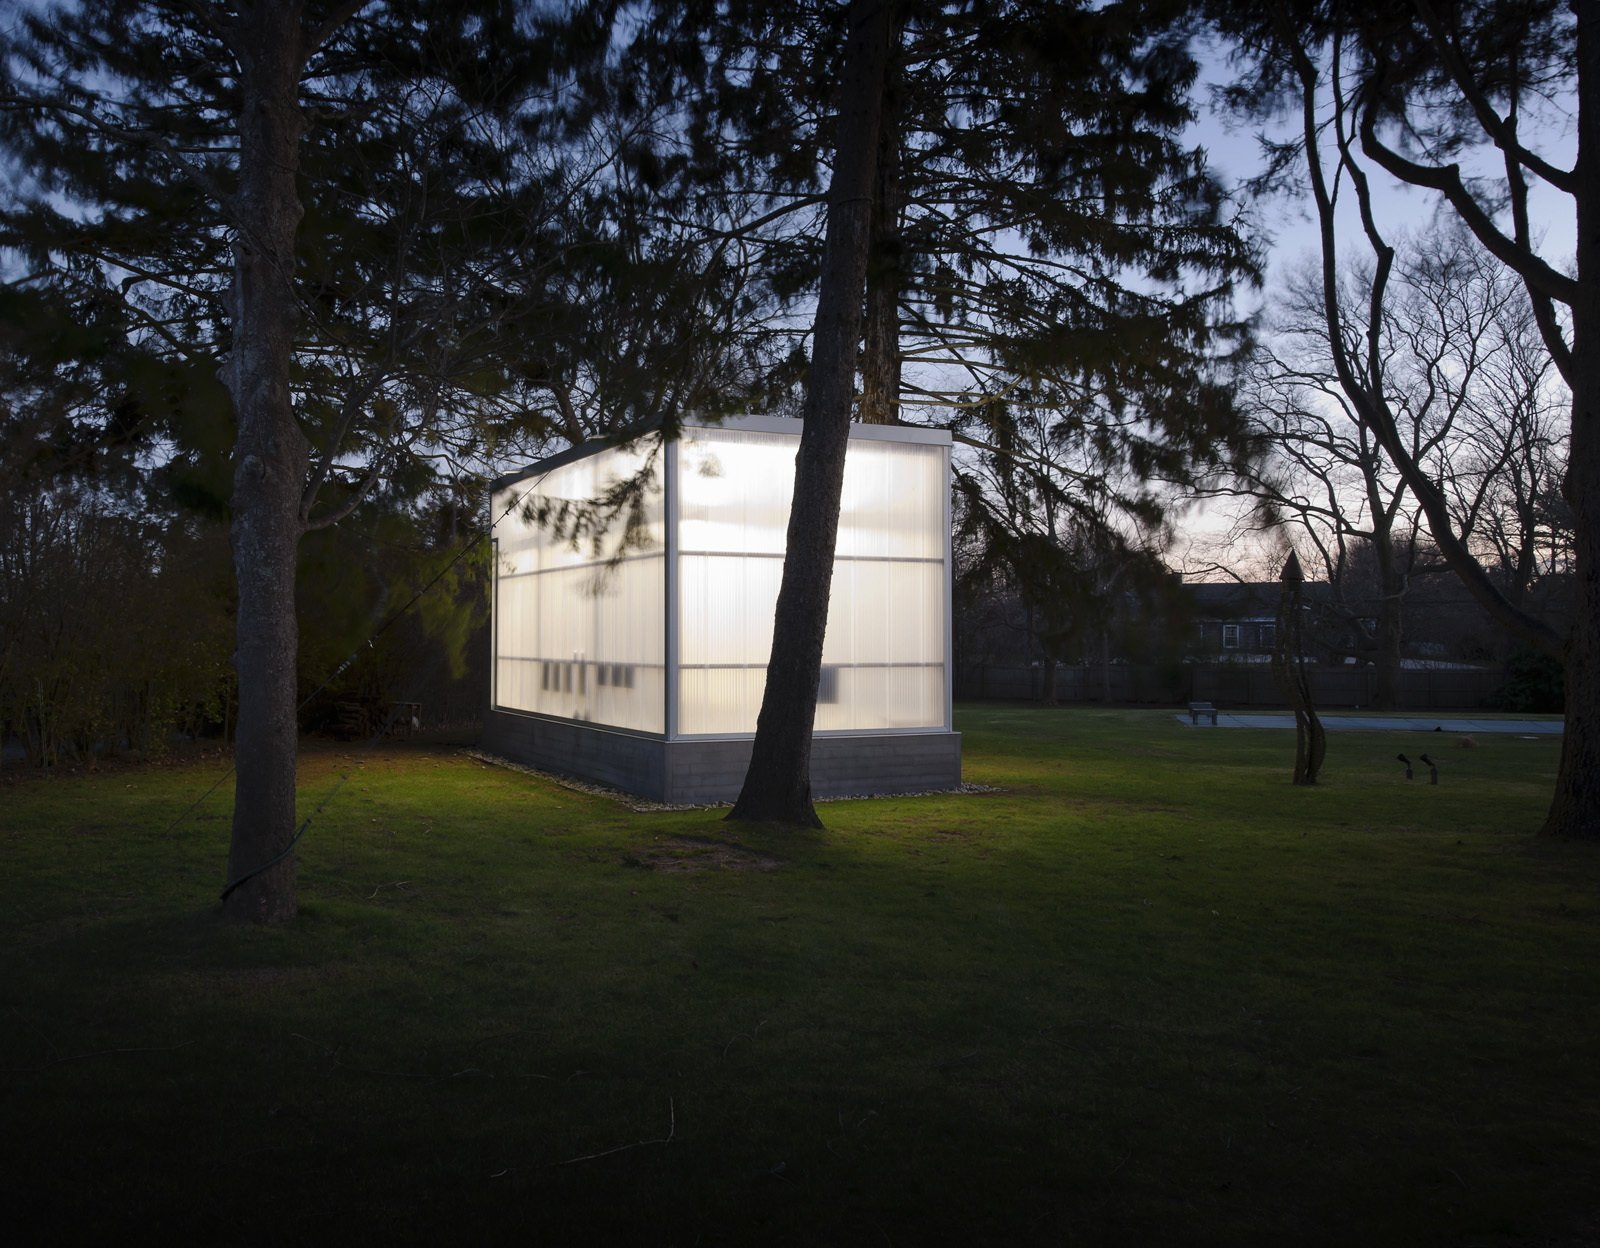 """Completed in 2009, the studio shines in the night among the trees. Weiselberg and Semaan devised a clever foundation system that allowed them to avoid ripping up roots. """"The floor is a concrete slab on a steel deck that sits on a spider web of steel beams,"""" Weiselberg says. """"There are eight piers per side of the structure, each designed so that if we dug the 12-inch hole and there were roots underneath, we could move it along a certain radius. The base is like a skirt that is just hanging off the building."""" So while the floor floats a foot above the ground in the couple's backyard for now, it could one day easily be picked up and moved elsewhere.  McWhorter Vallee Design Inc.'s Favorites from His-Her Collage and Ceramics Studio"""